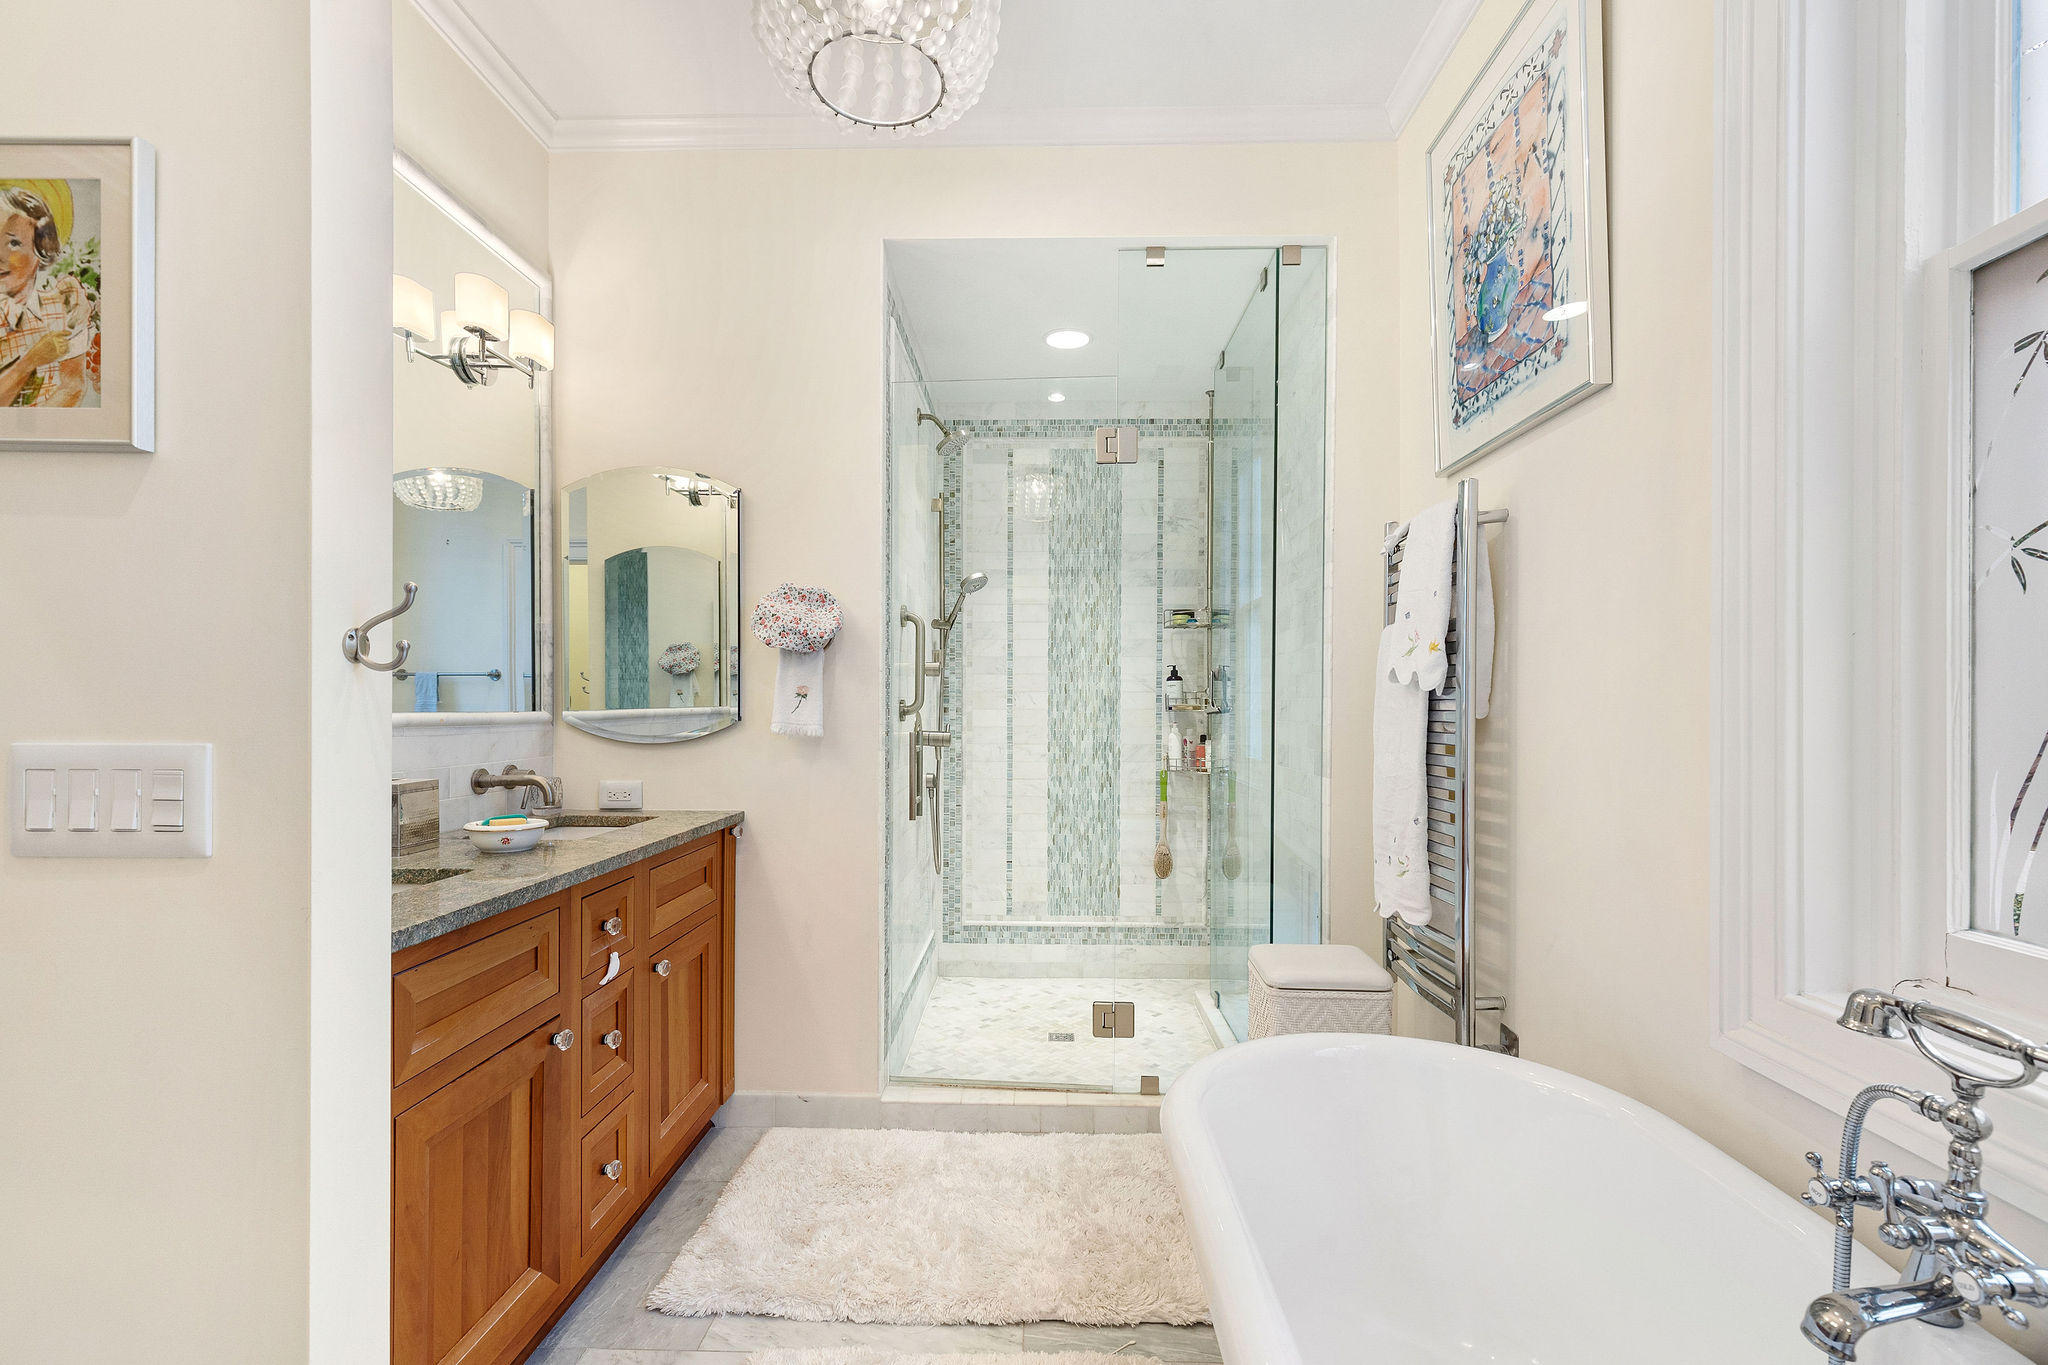 South of Broad Homes For Sale - 53 Church, Charleston, SC - 2